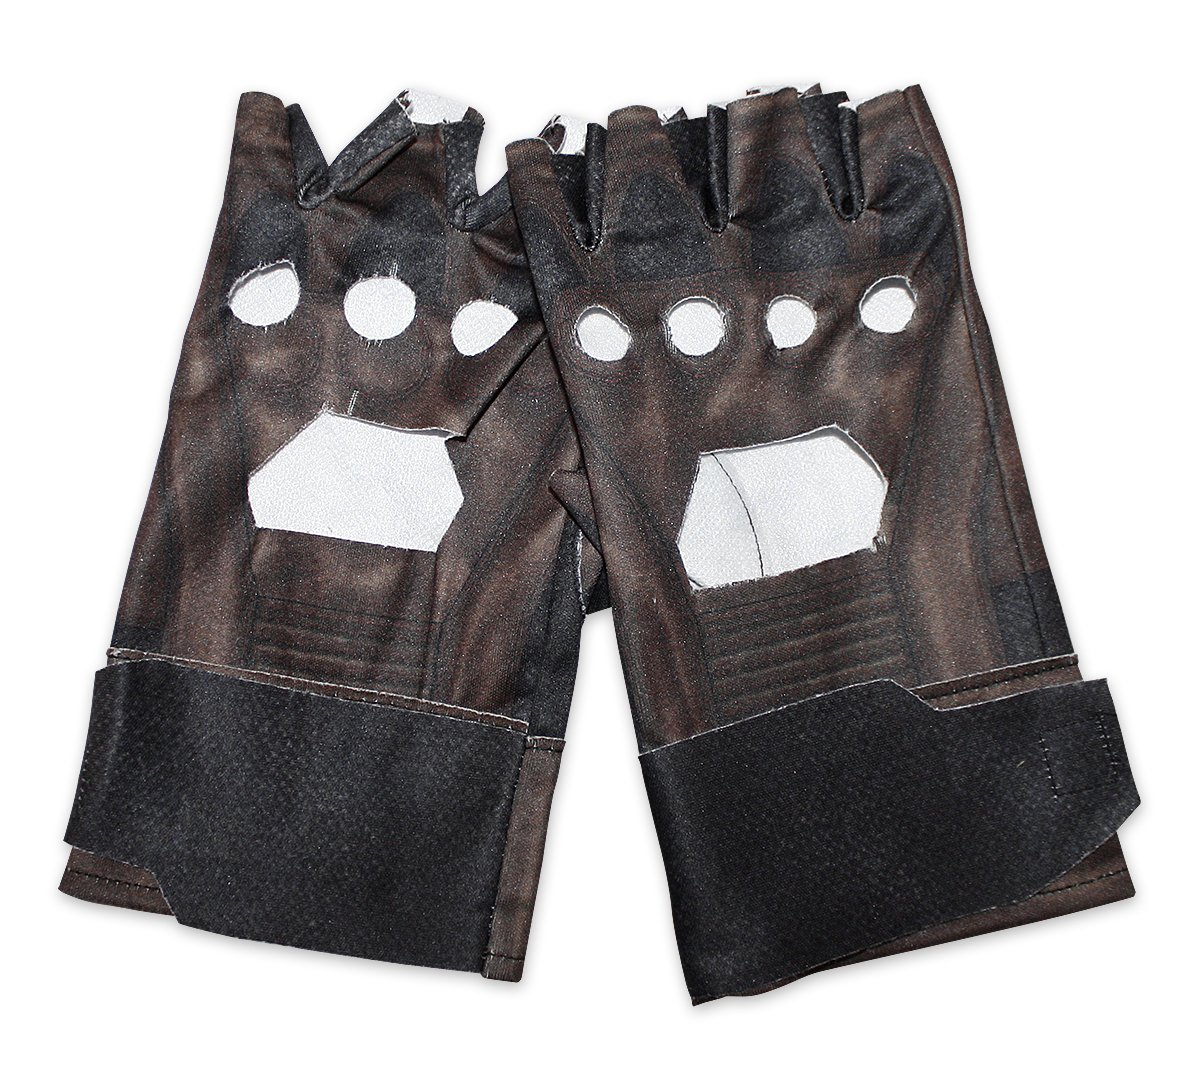 Captain America The Winter Soldier Retro Gloves Leather-Like Gloves by Close Up